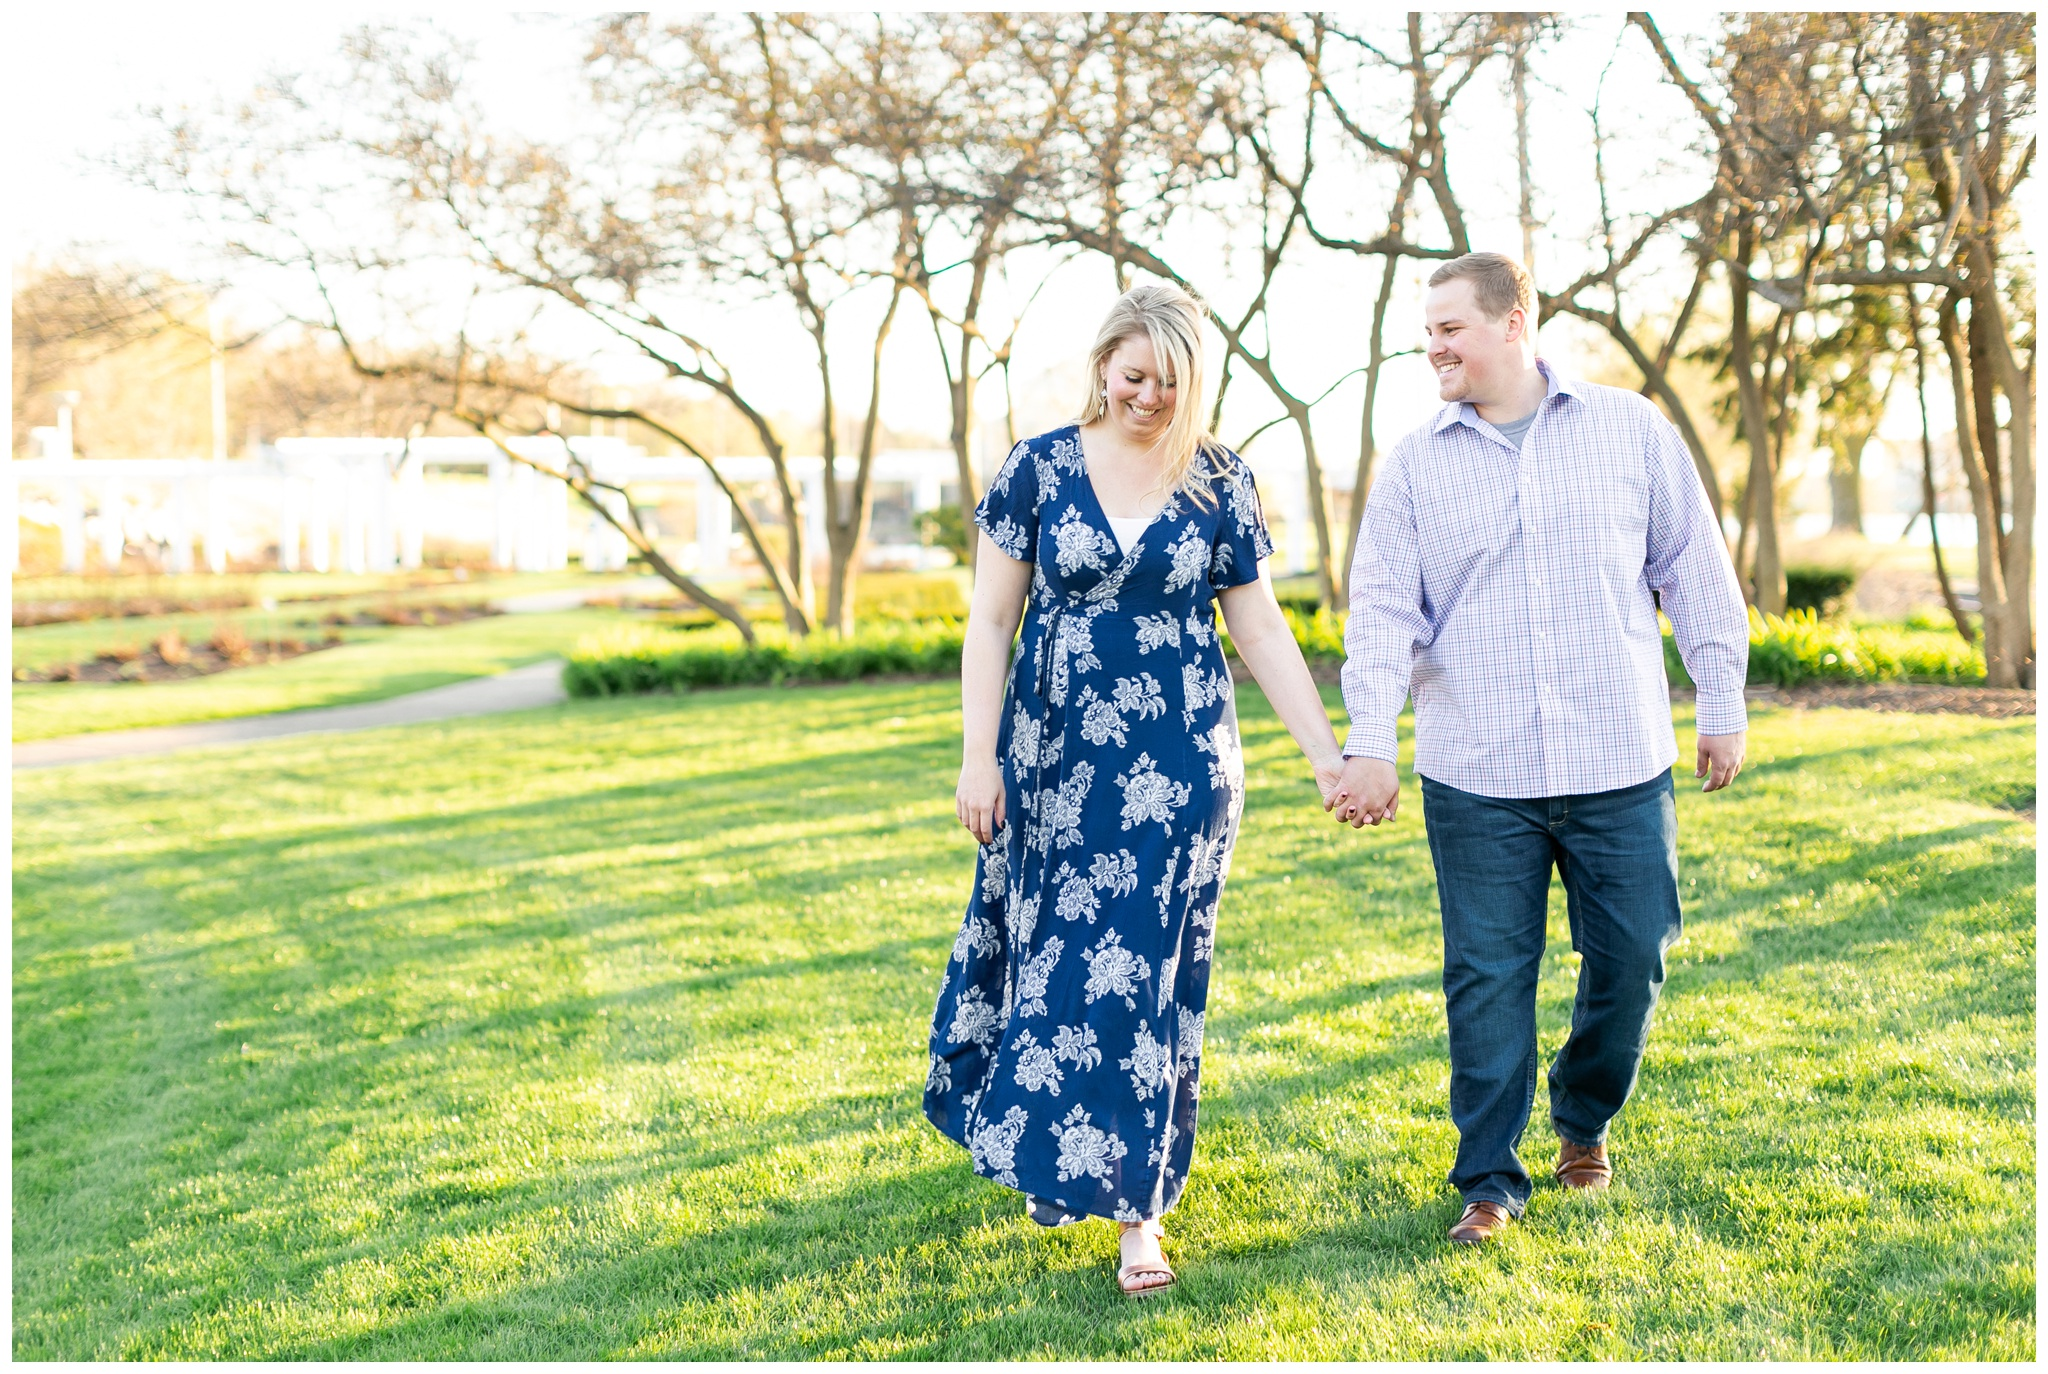 nicholas_conservatory_engagement_session_rockford_illinois_caynay_photo_2995.jpg